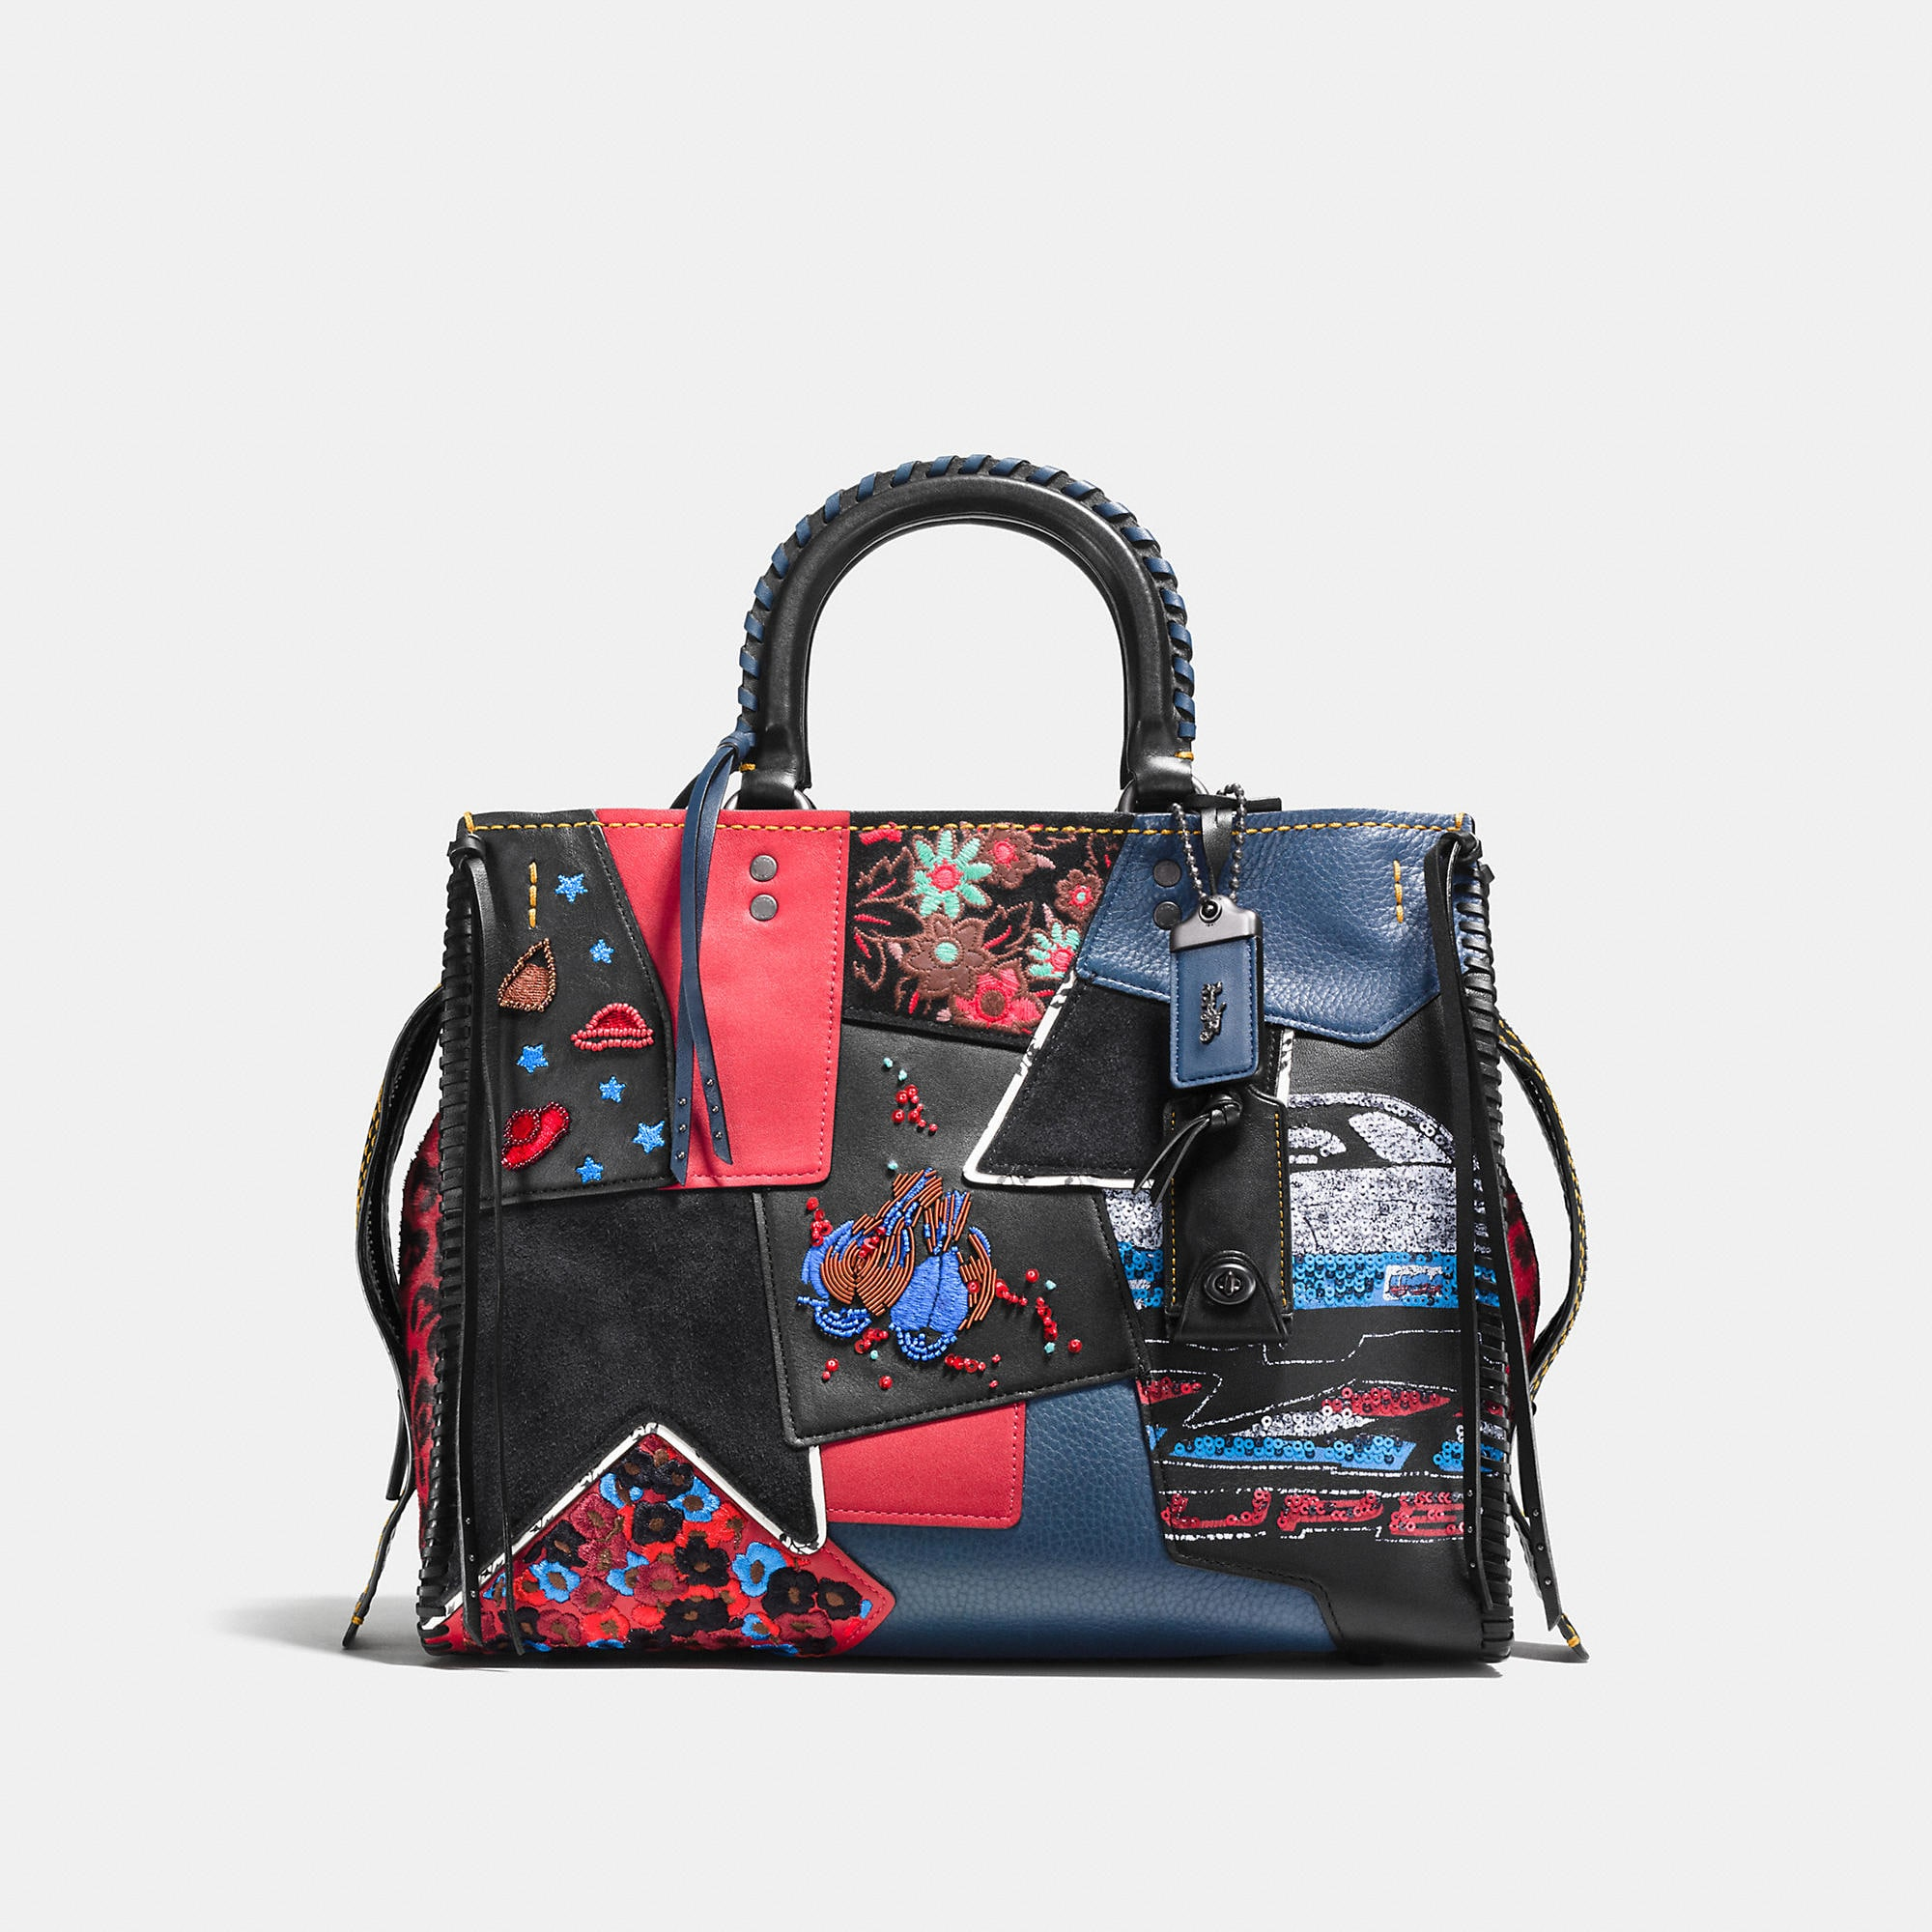 Coach Rogue In Embellished Patchwork Mixed Materials